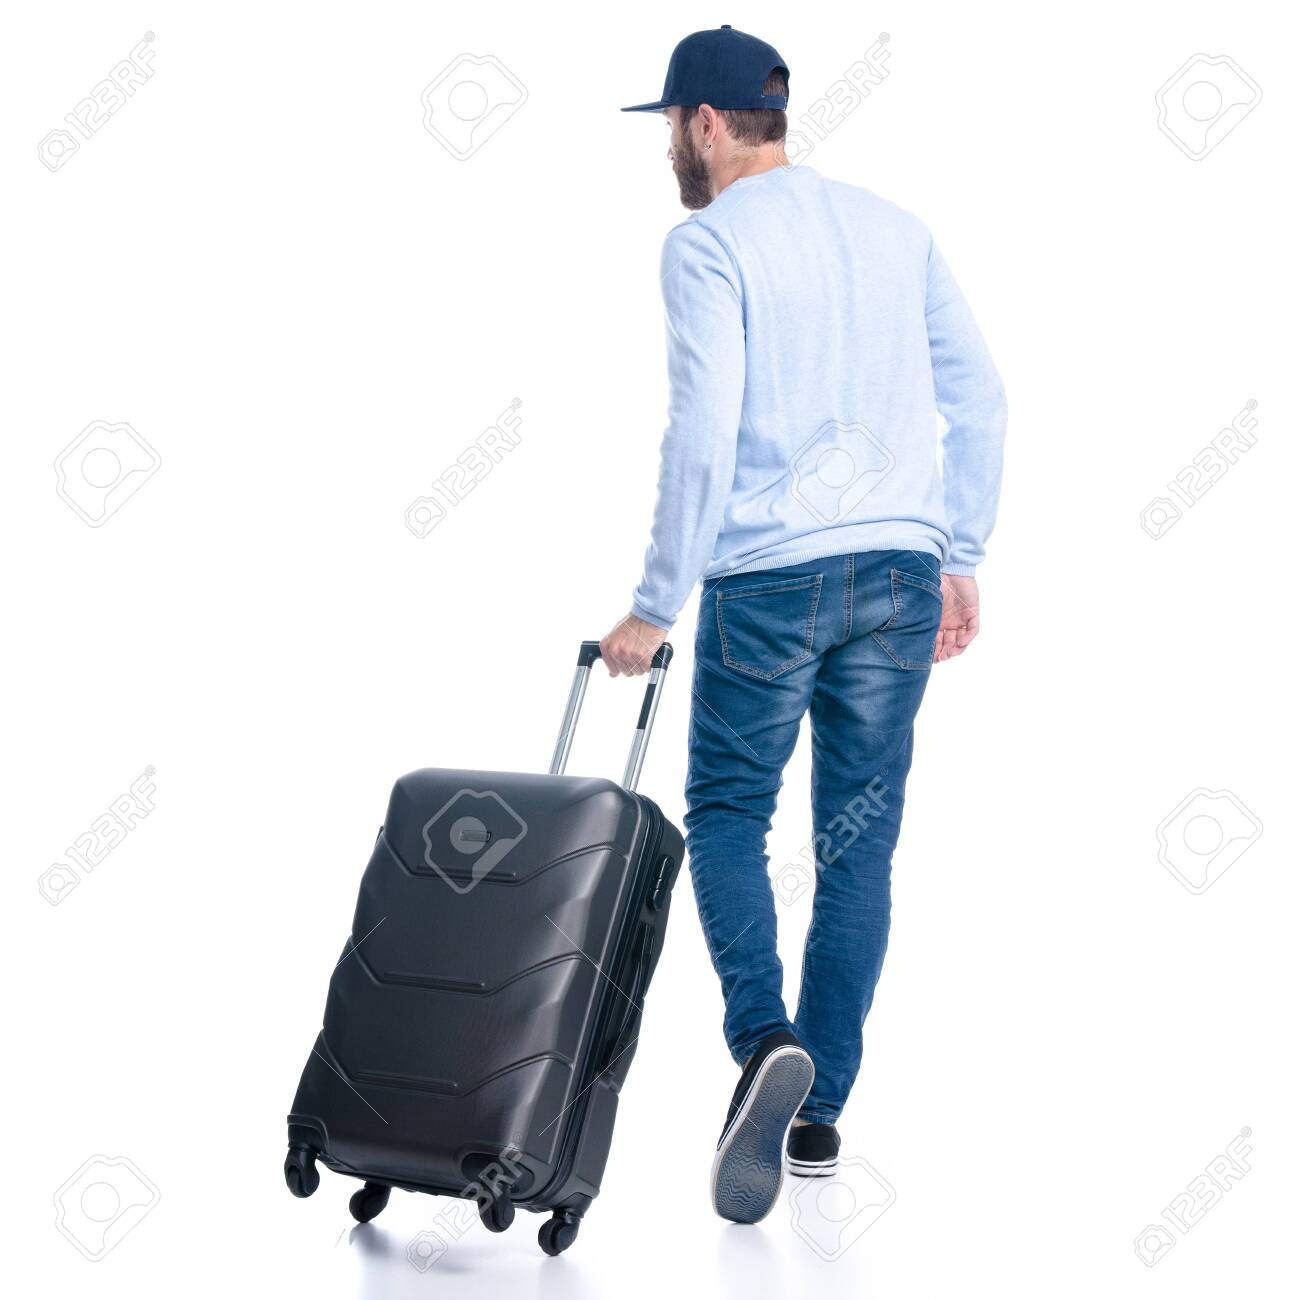 Man in jeans with travel suitcase goes walking - 144518390